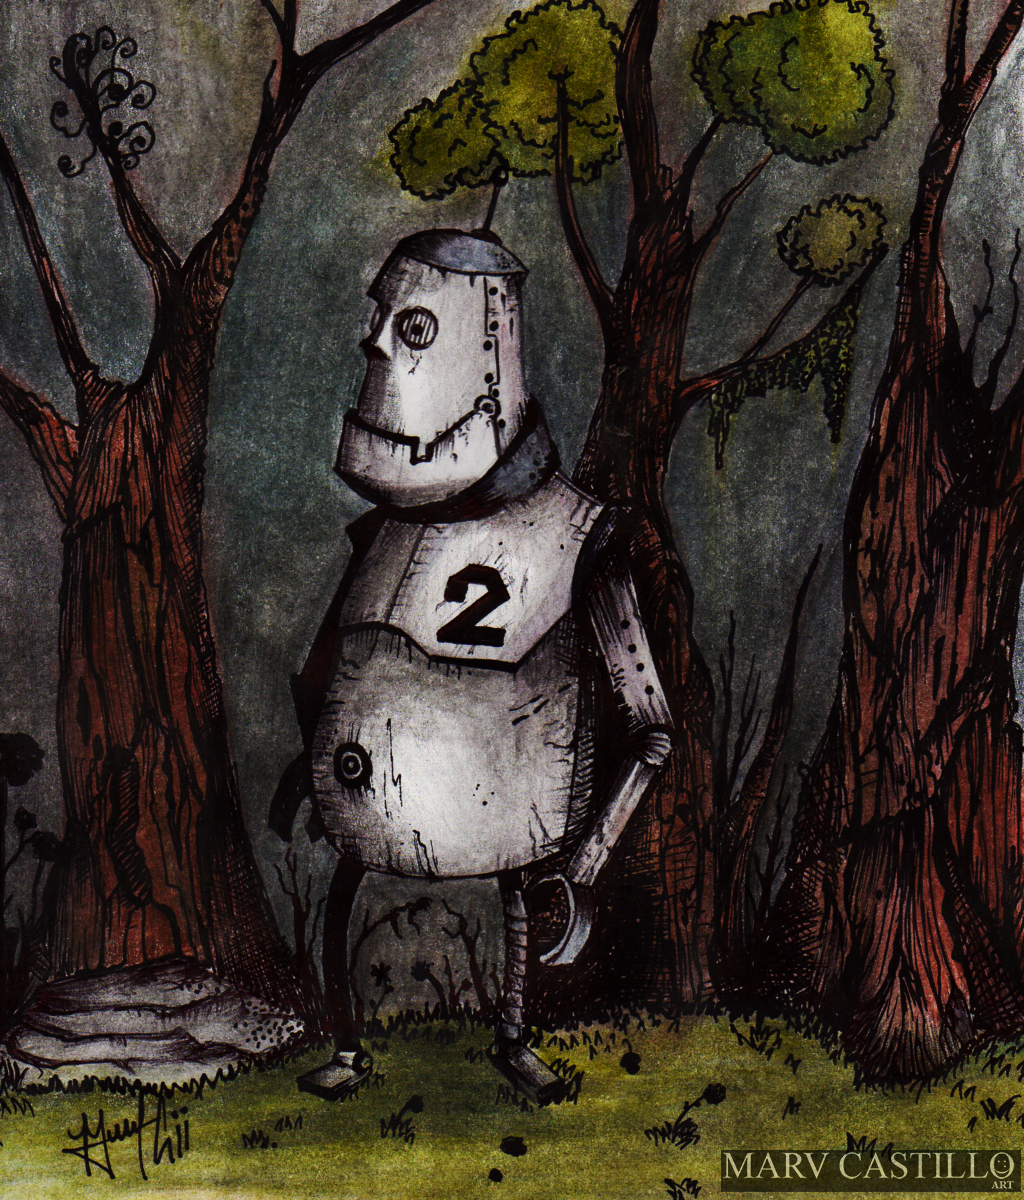 A Robot, Lost in the Woods